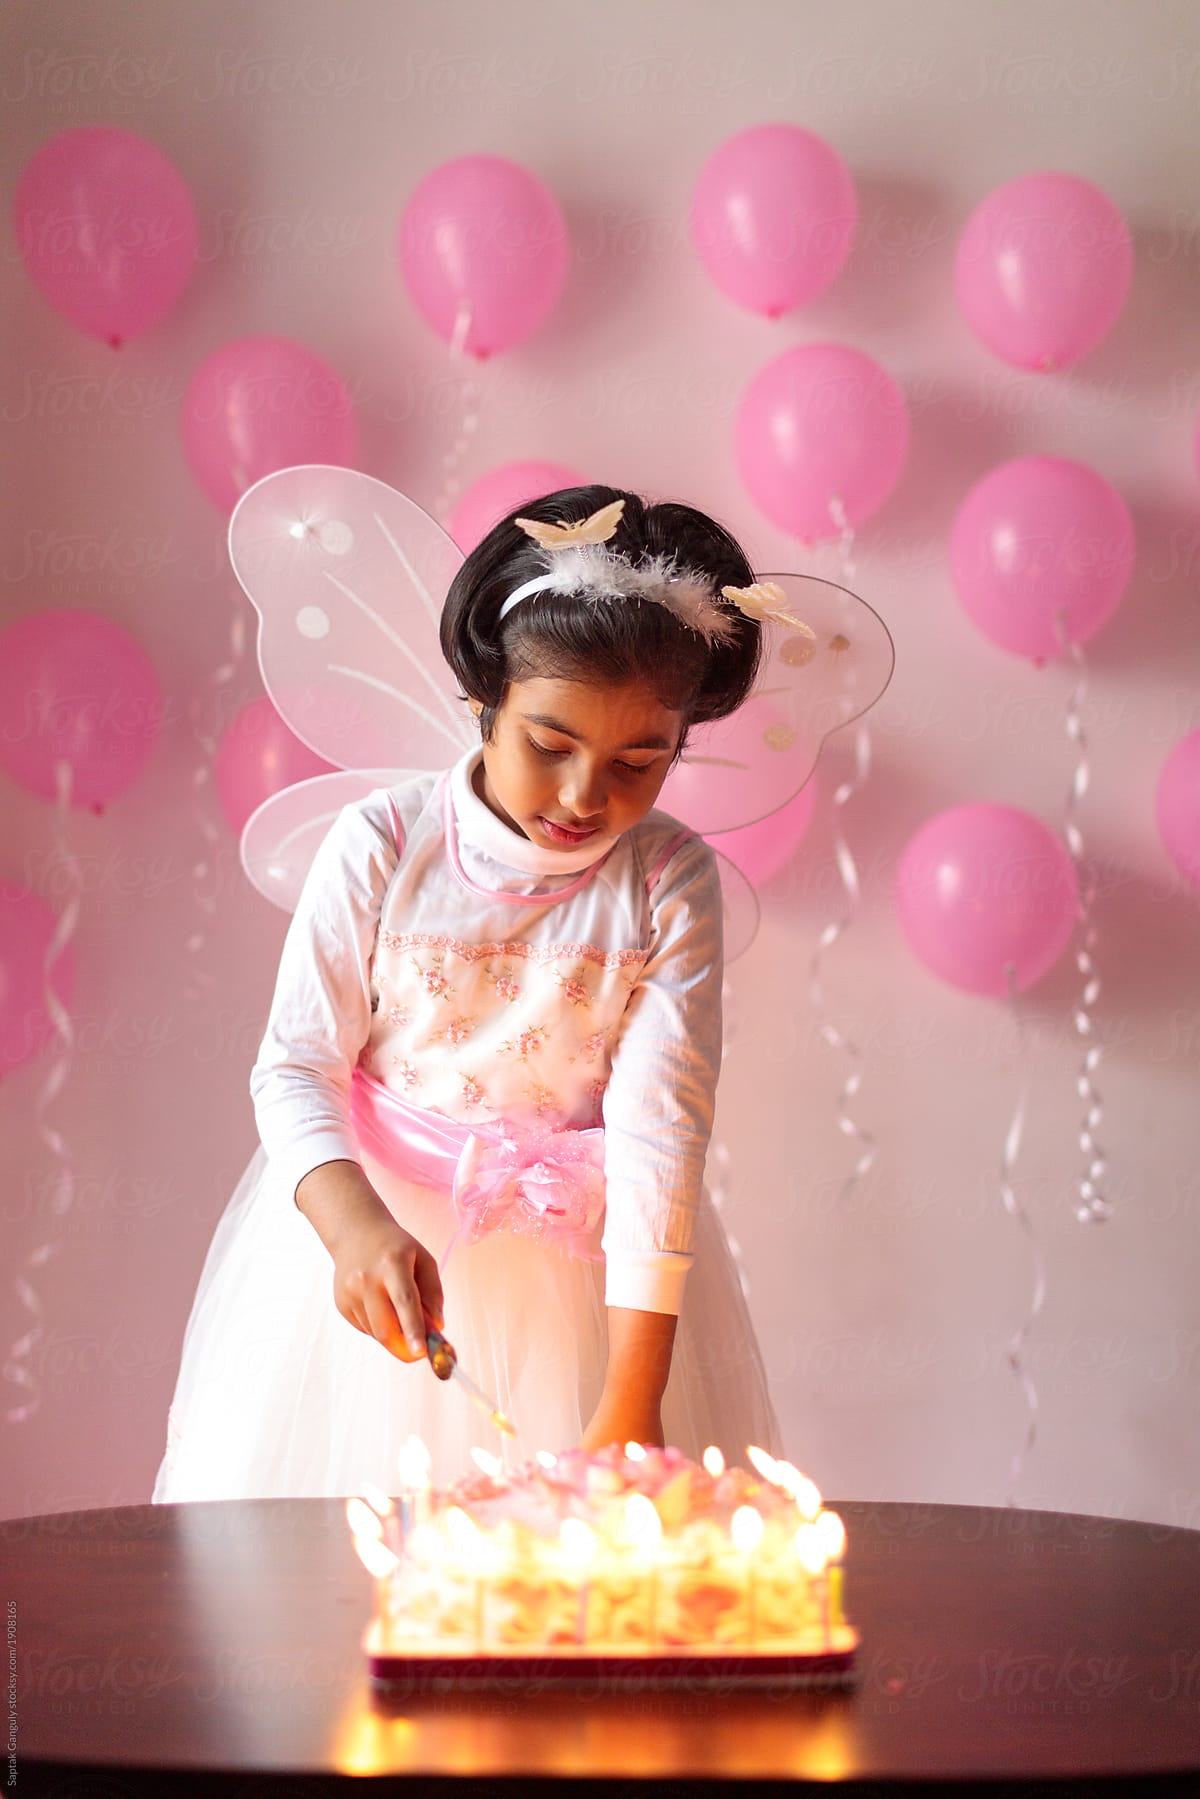 Little Girl Cutting Her Birthday Cake By Saptak Ganguly For Stocksy United